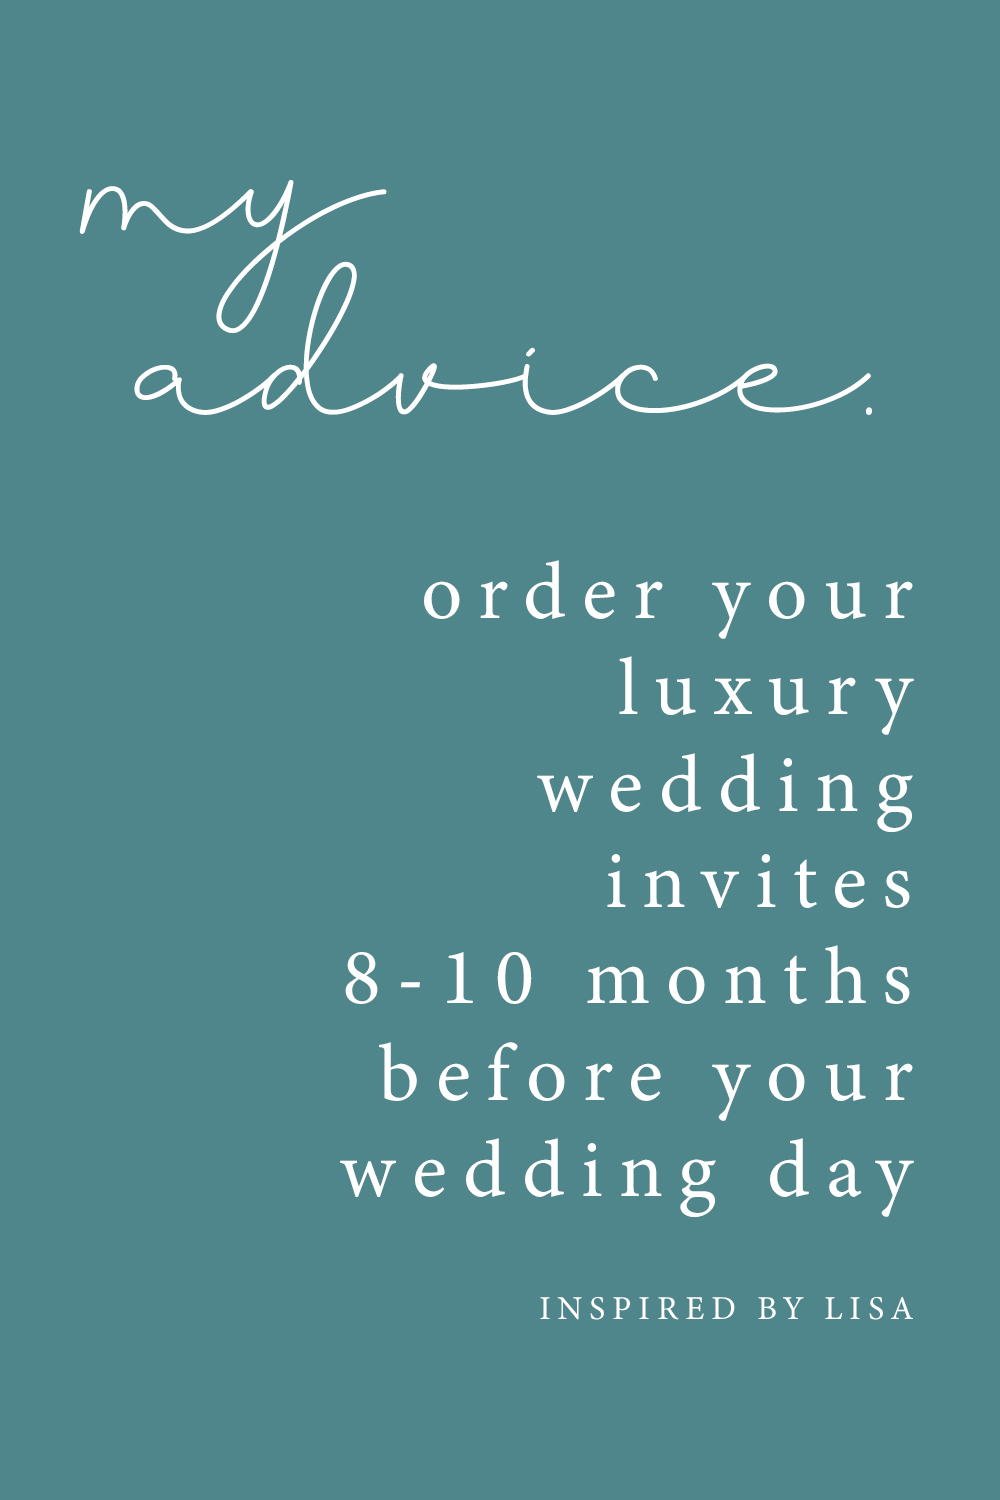 luxury wedding invites graphic when to order your wedding invitations advice